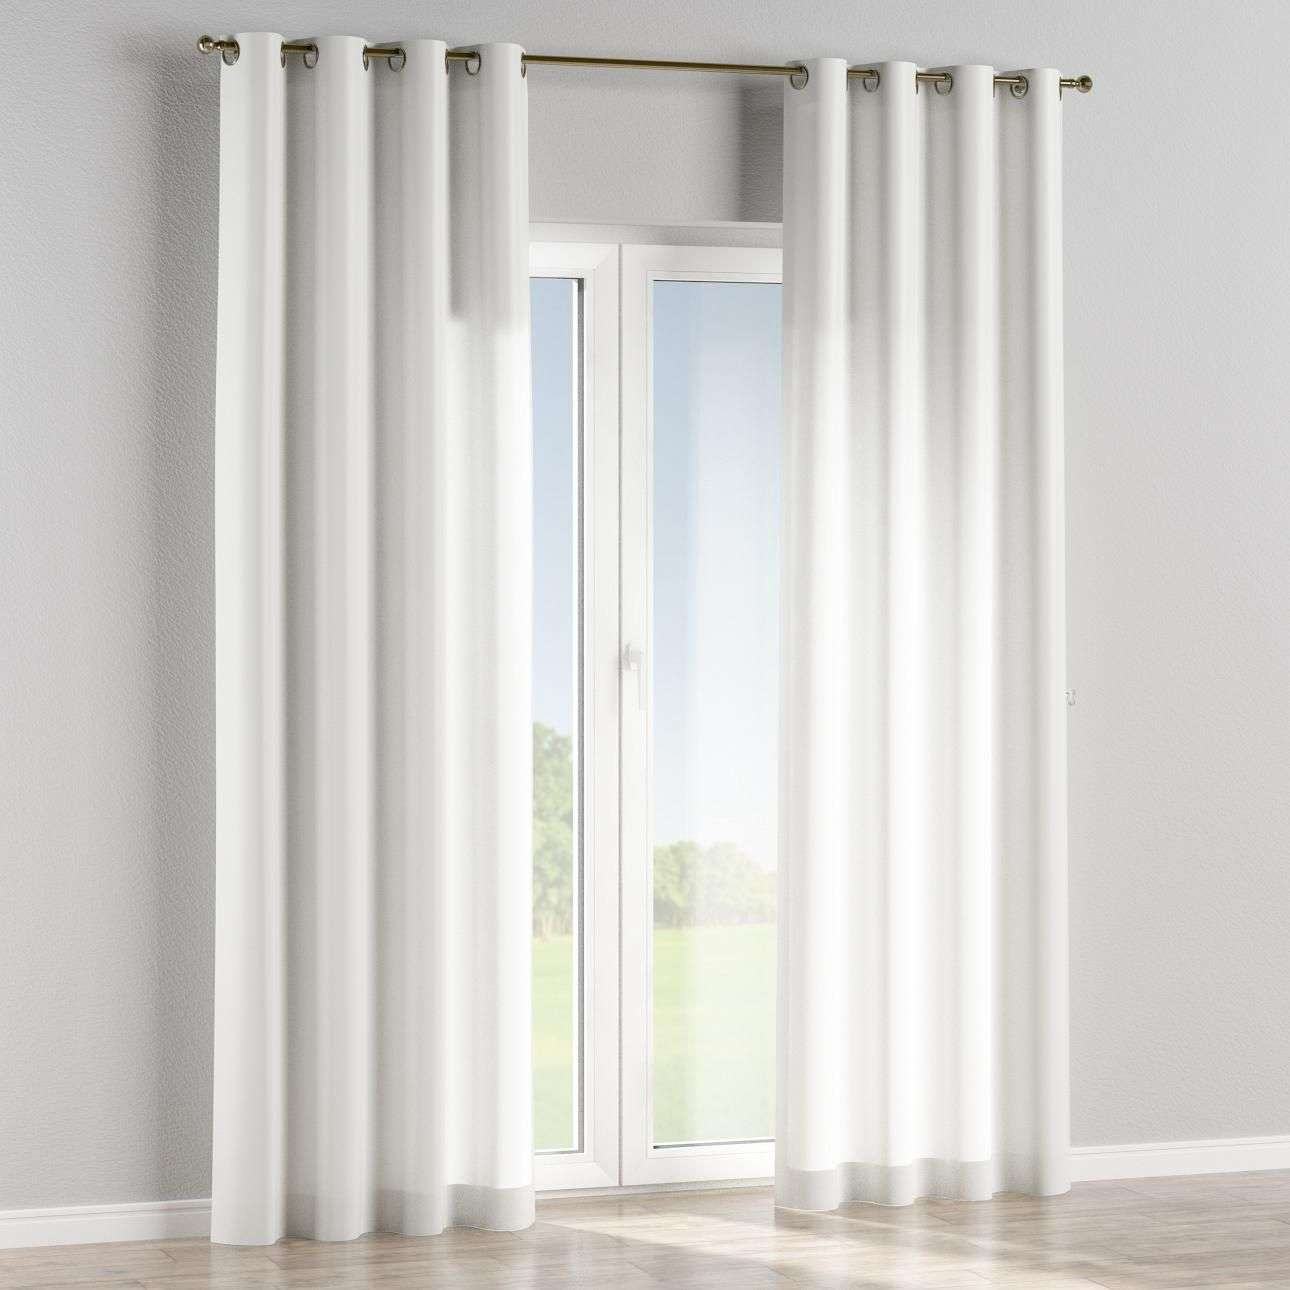 Eyelet lined curtains in collection Rustica, fabric: 138-11